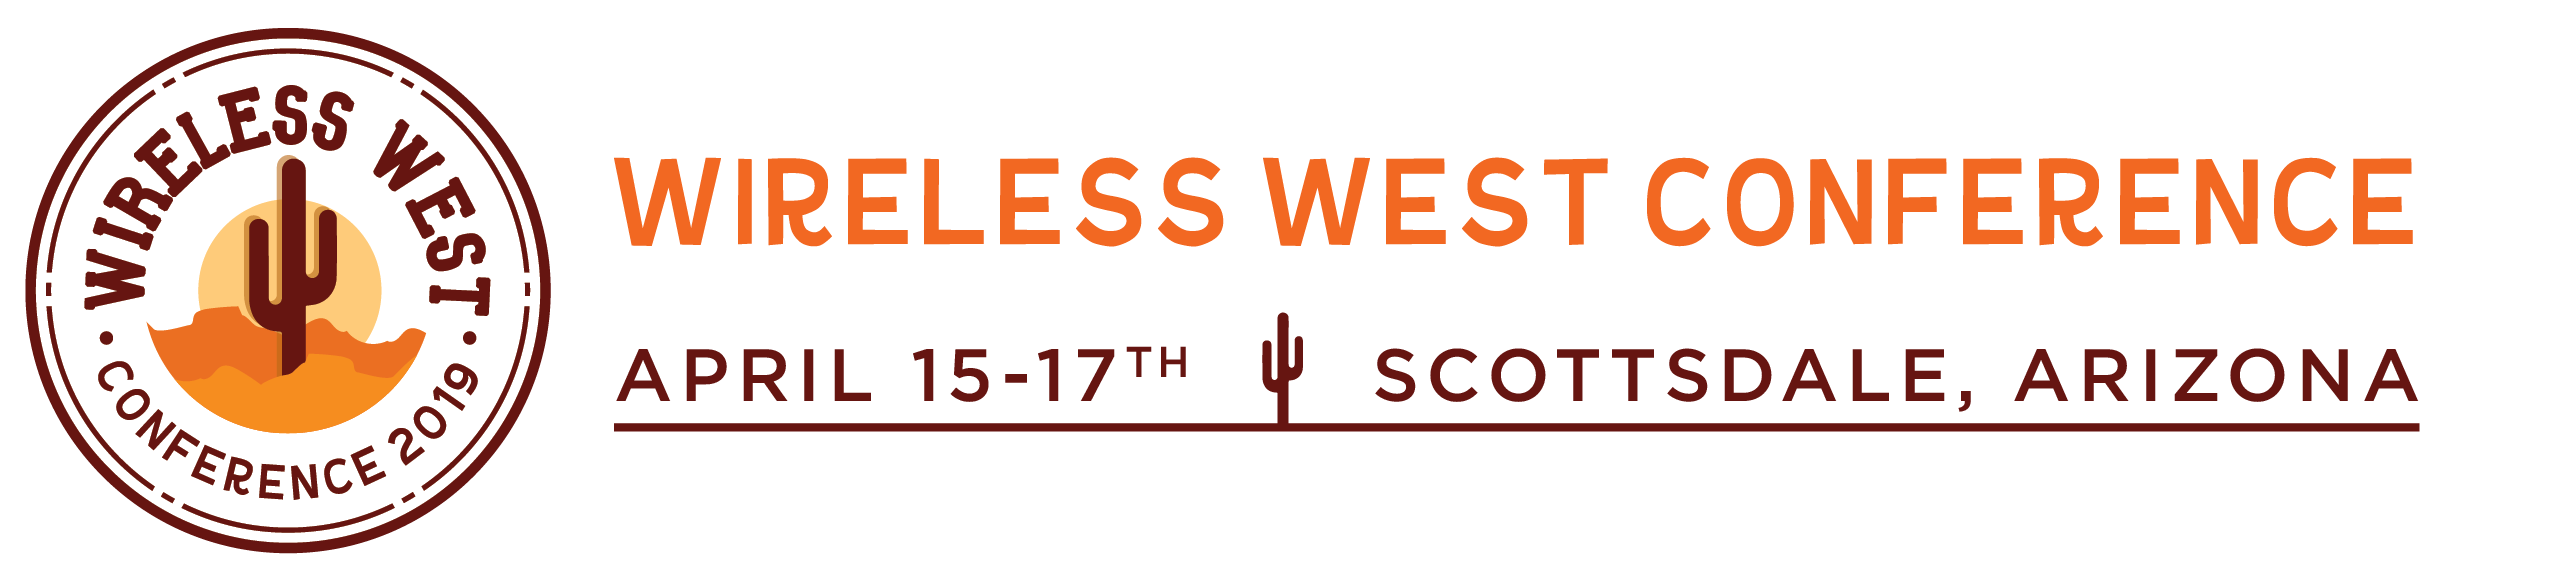 Wireless West Conference